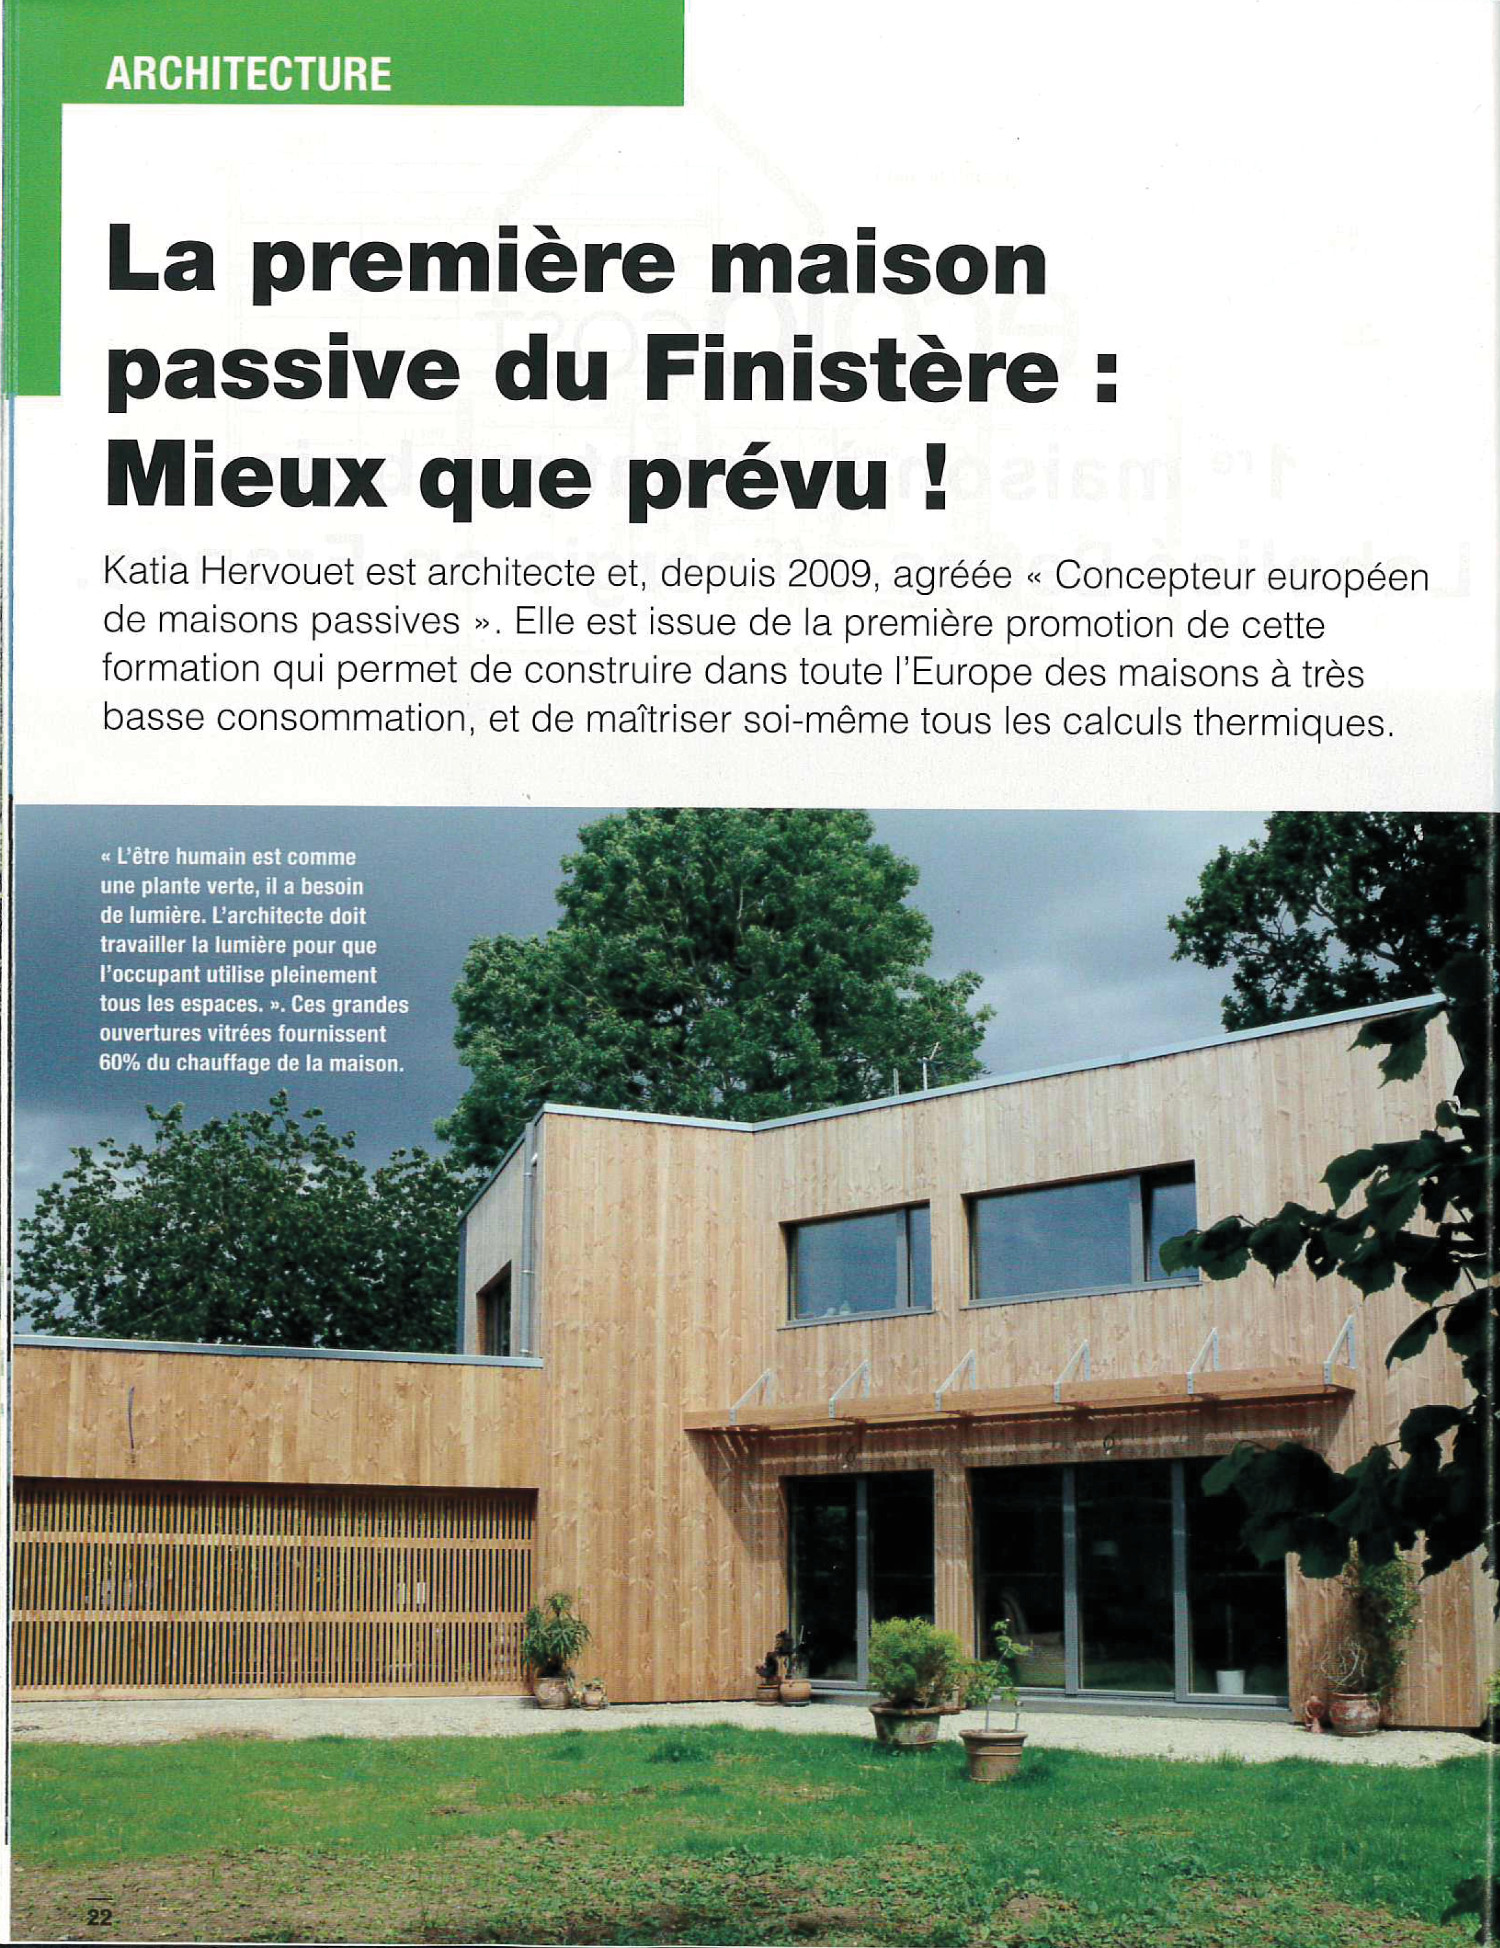 La maison positive top le la conception de la maison for Architecte maison passive